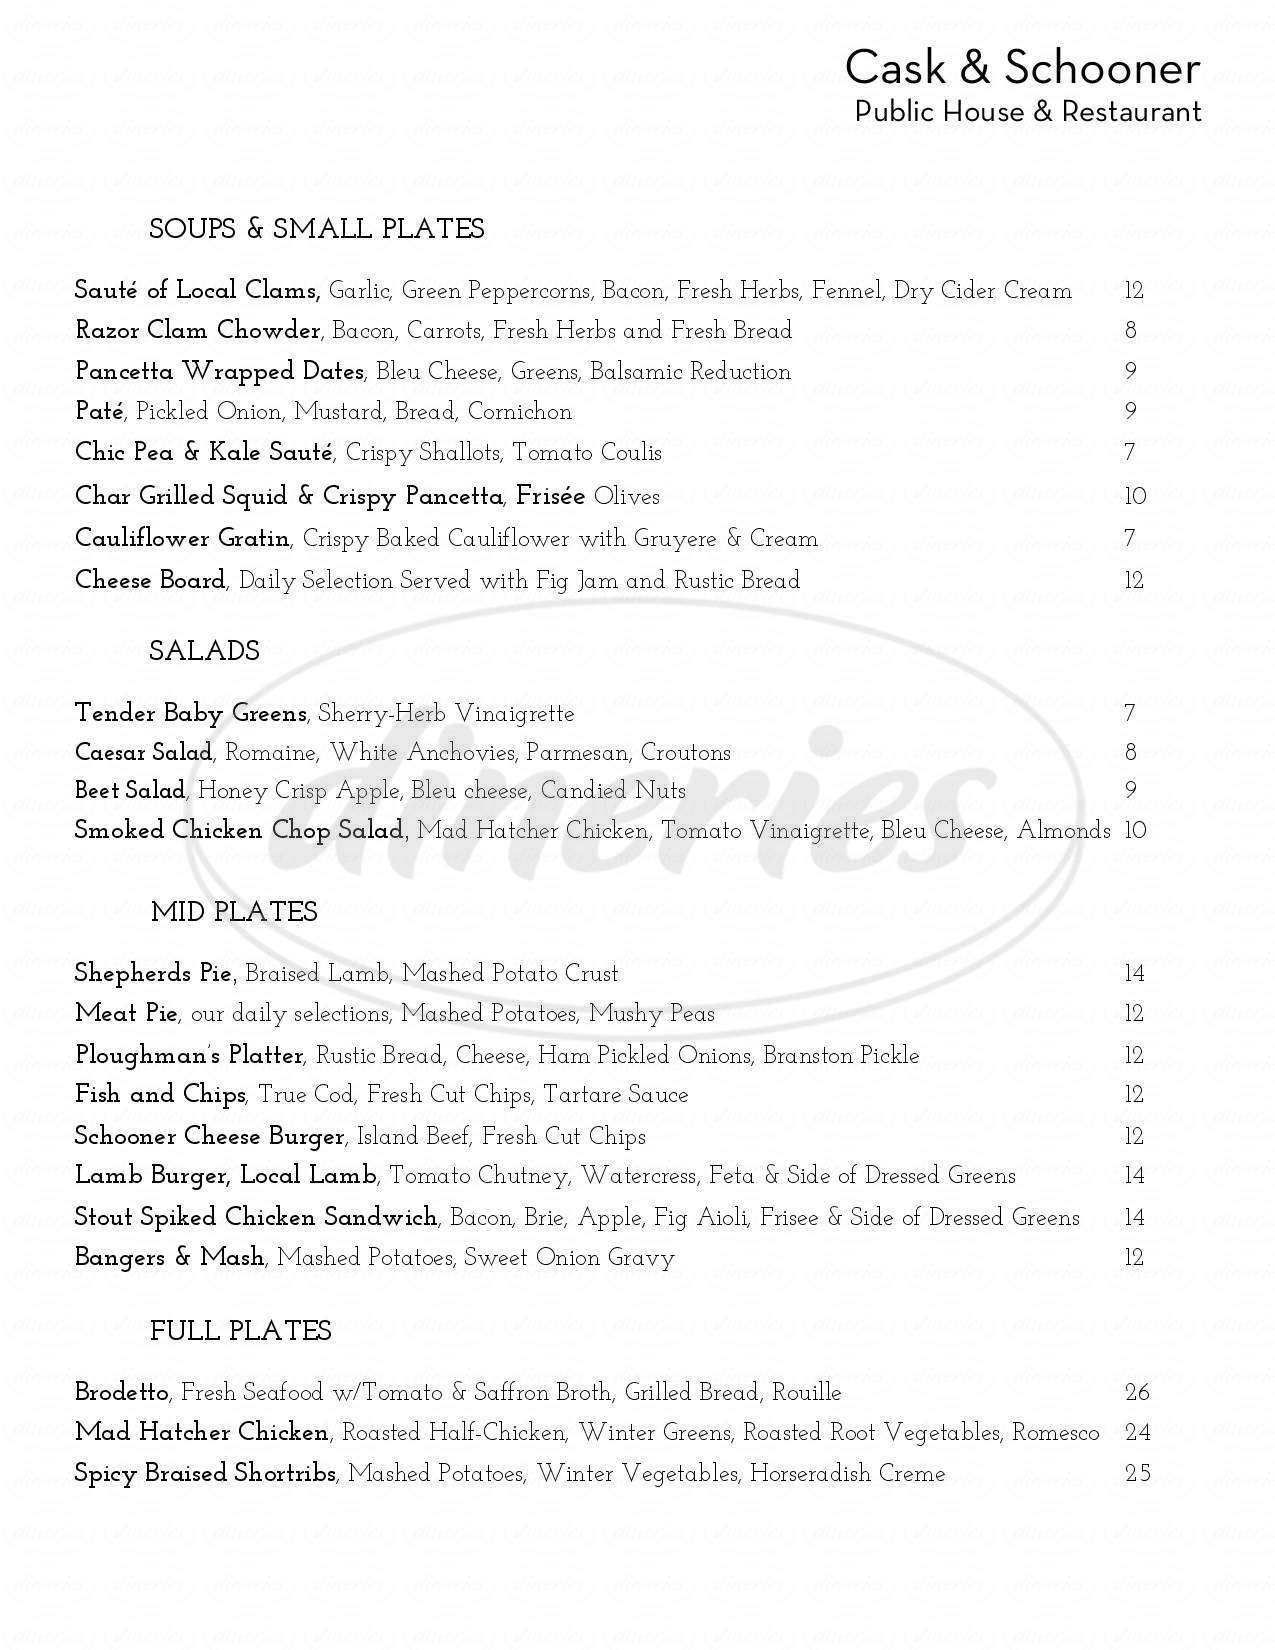 menu for Cask and Schooner Public House & Restaurant